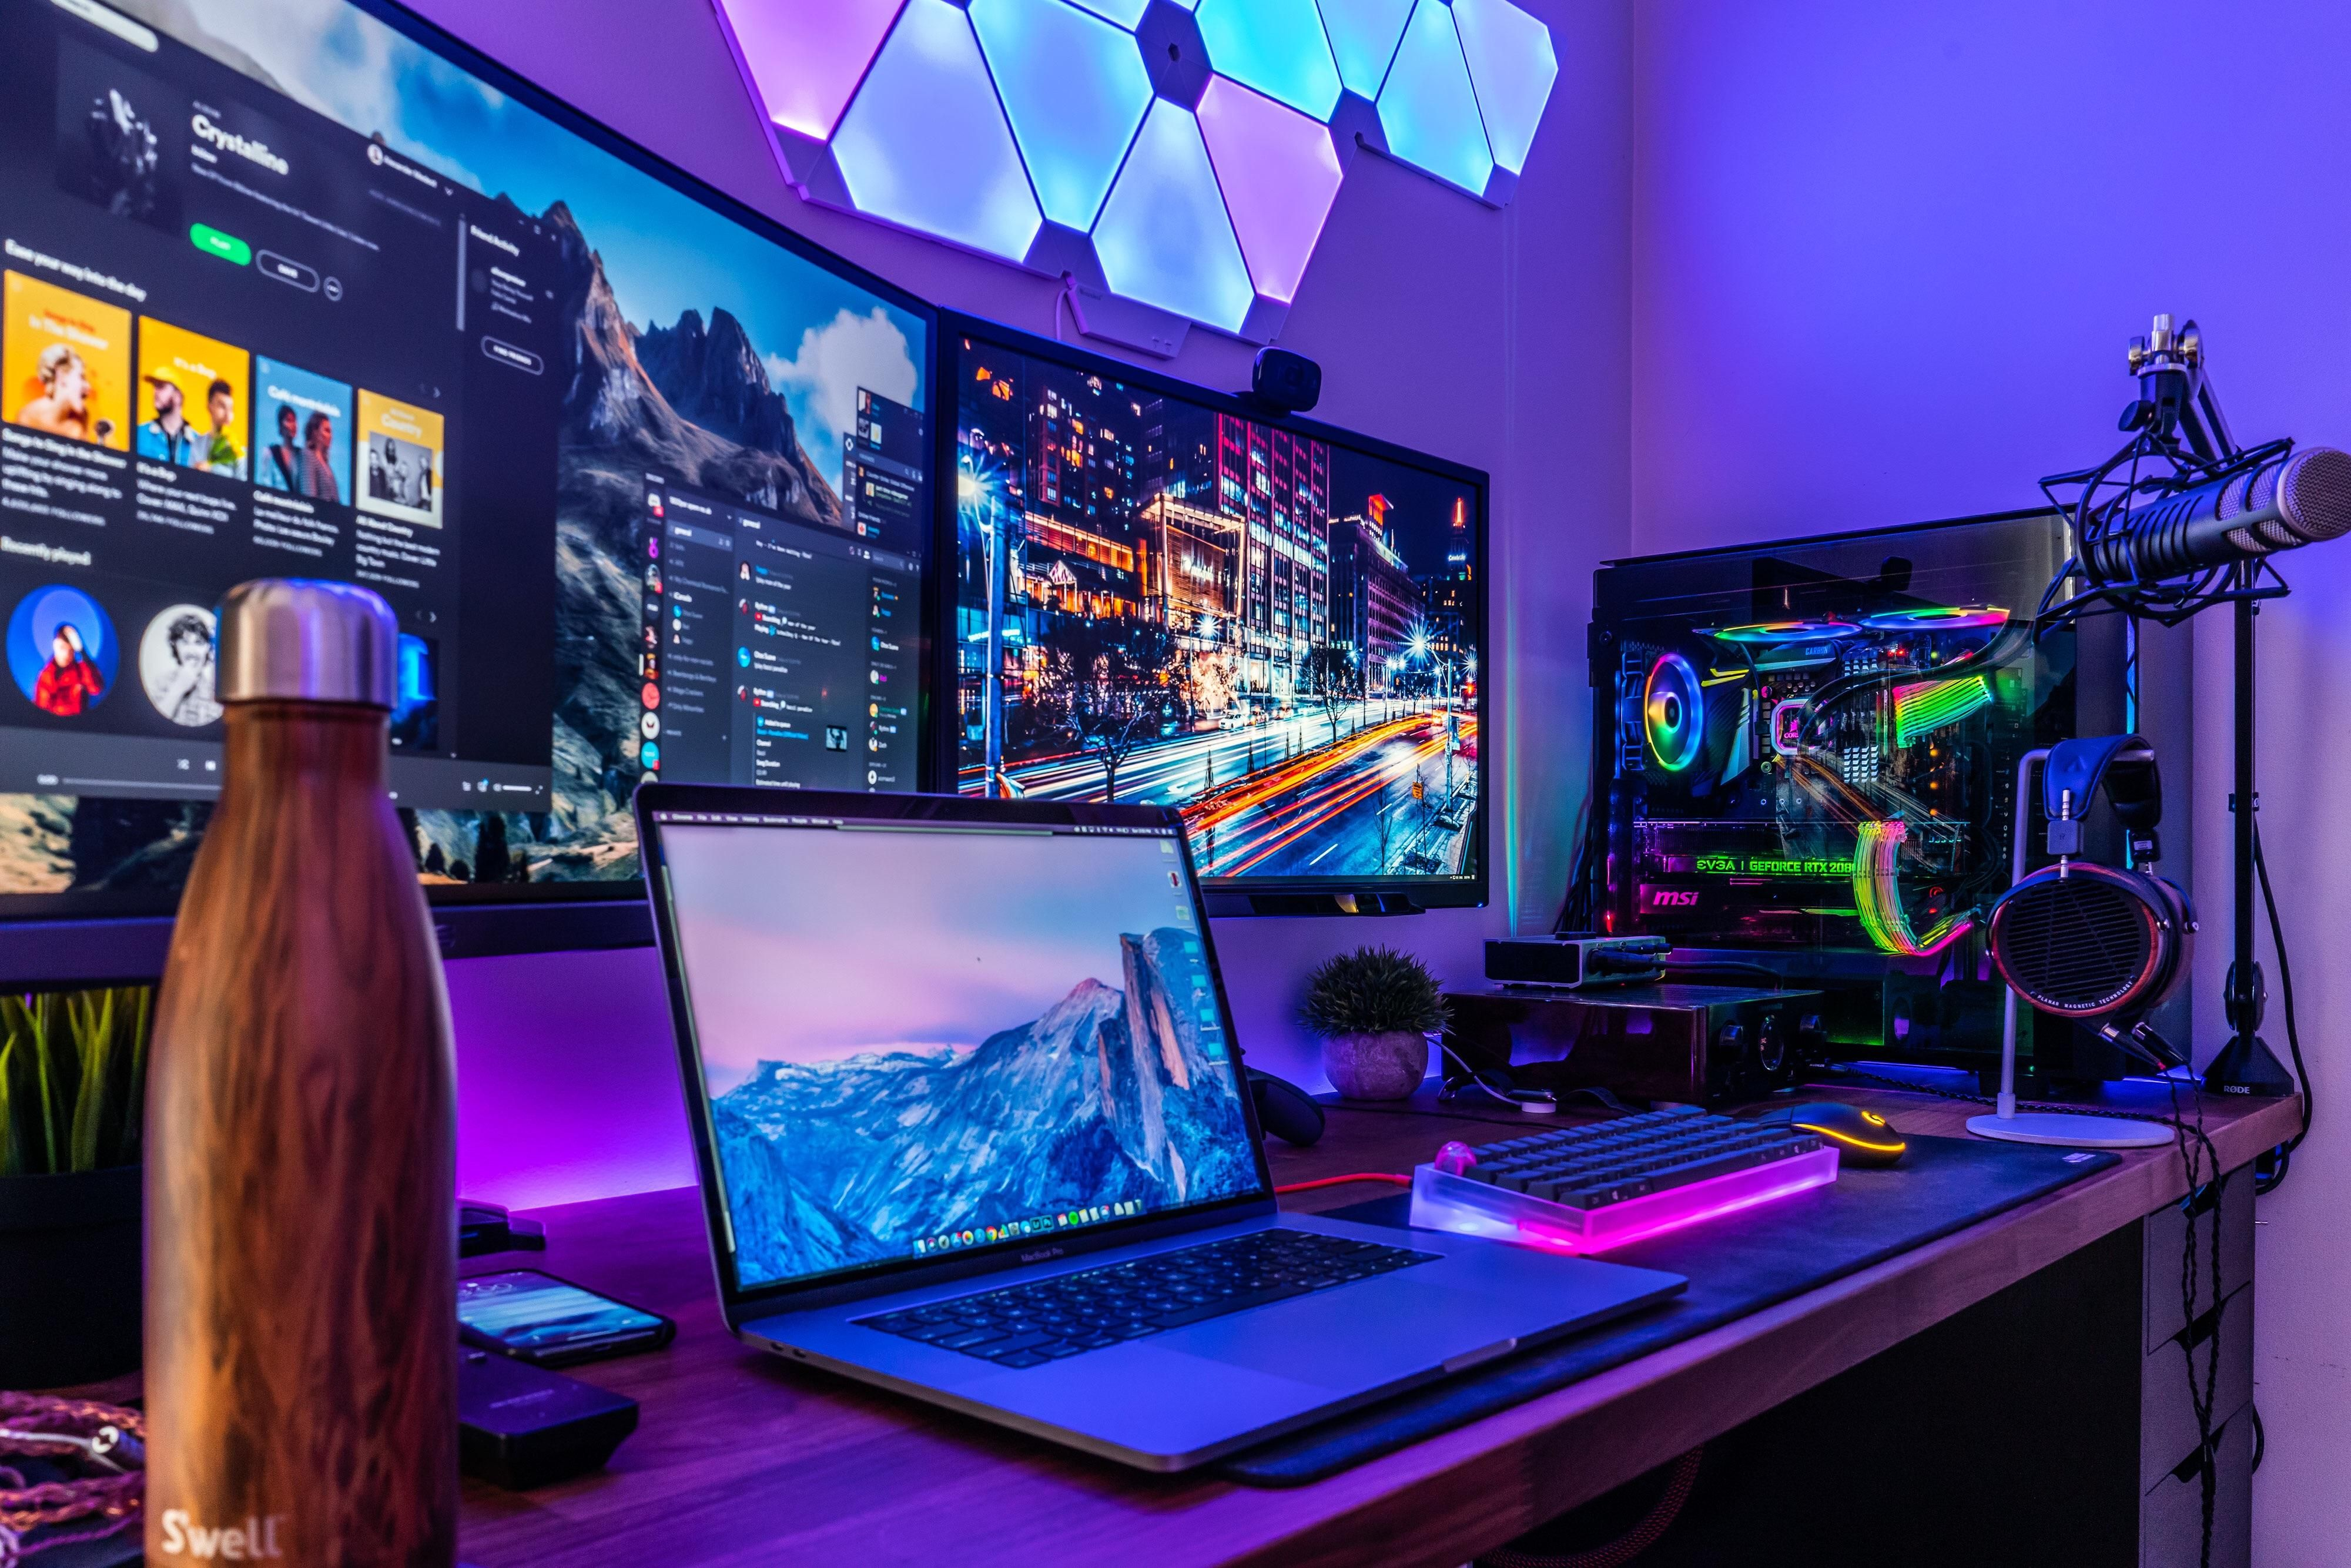 My Favourite Place To Relax Best Gaming Setup Gaming Desk Setup Gaming Setup